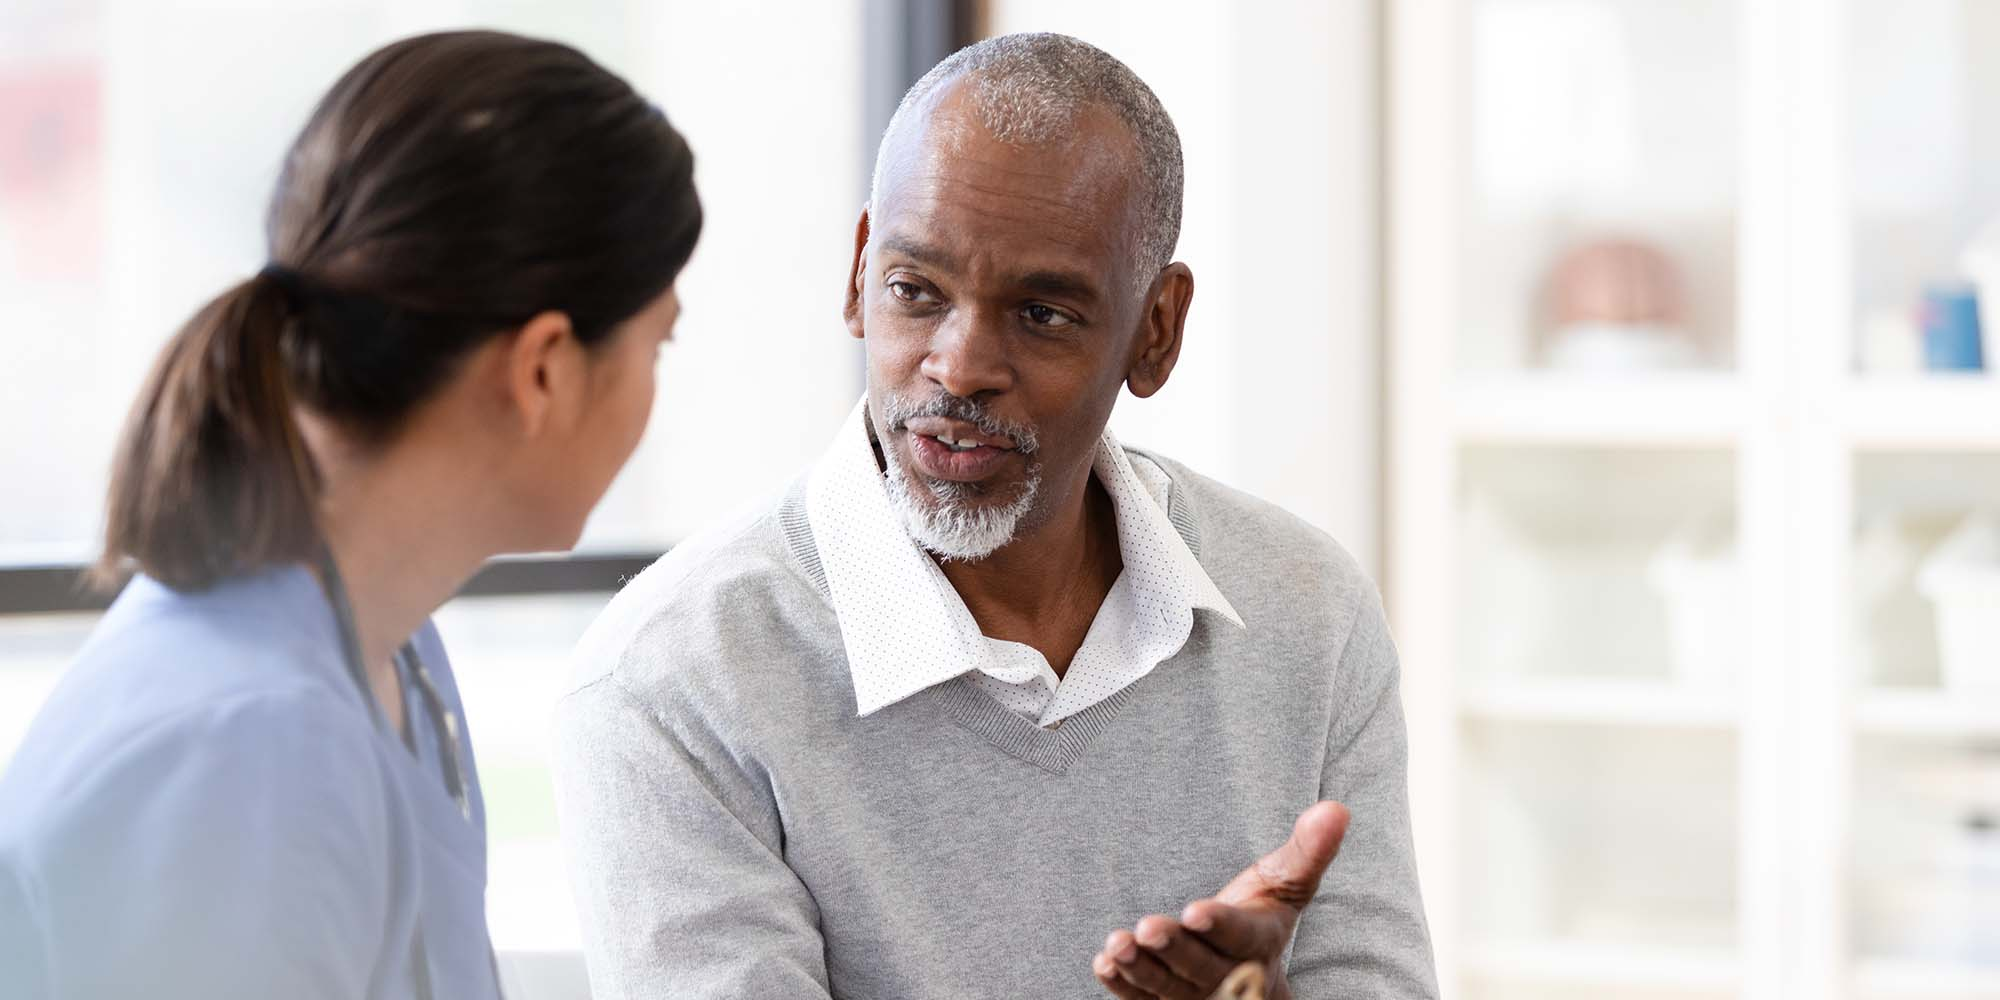 Knowing the common prostate cancer risk factors can help men detect the disease earlier